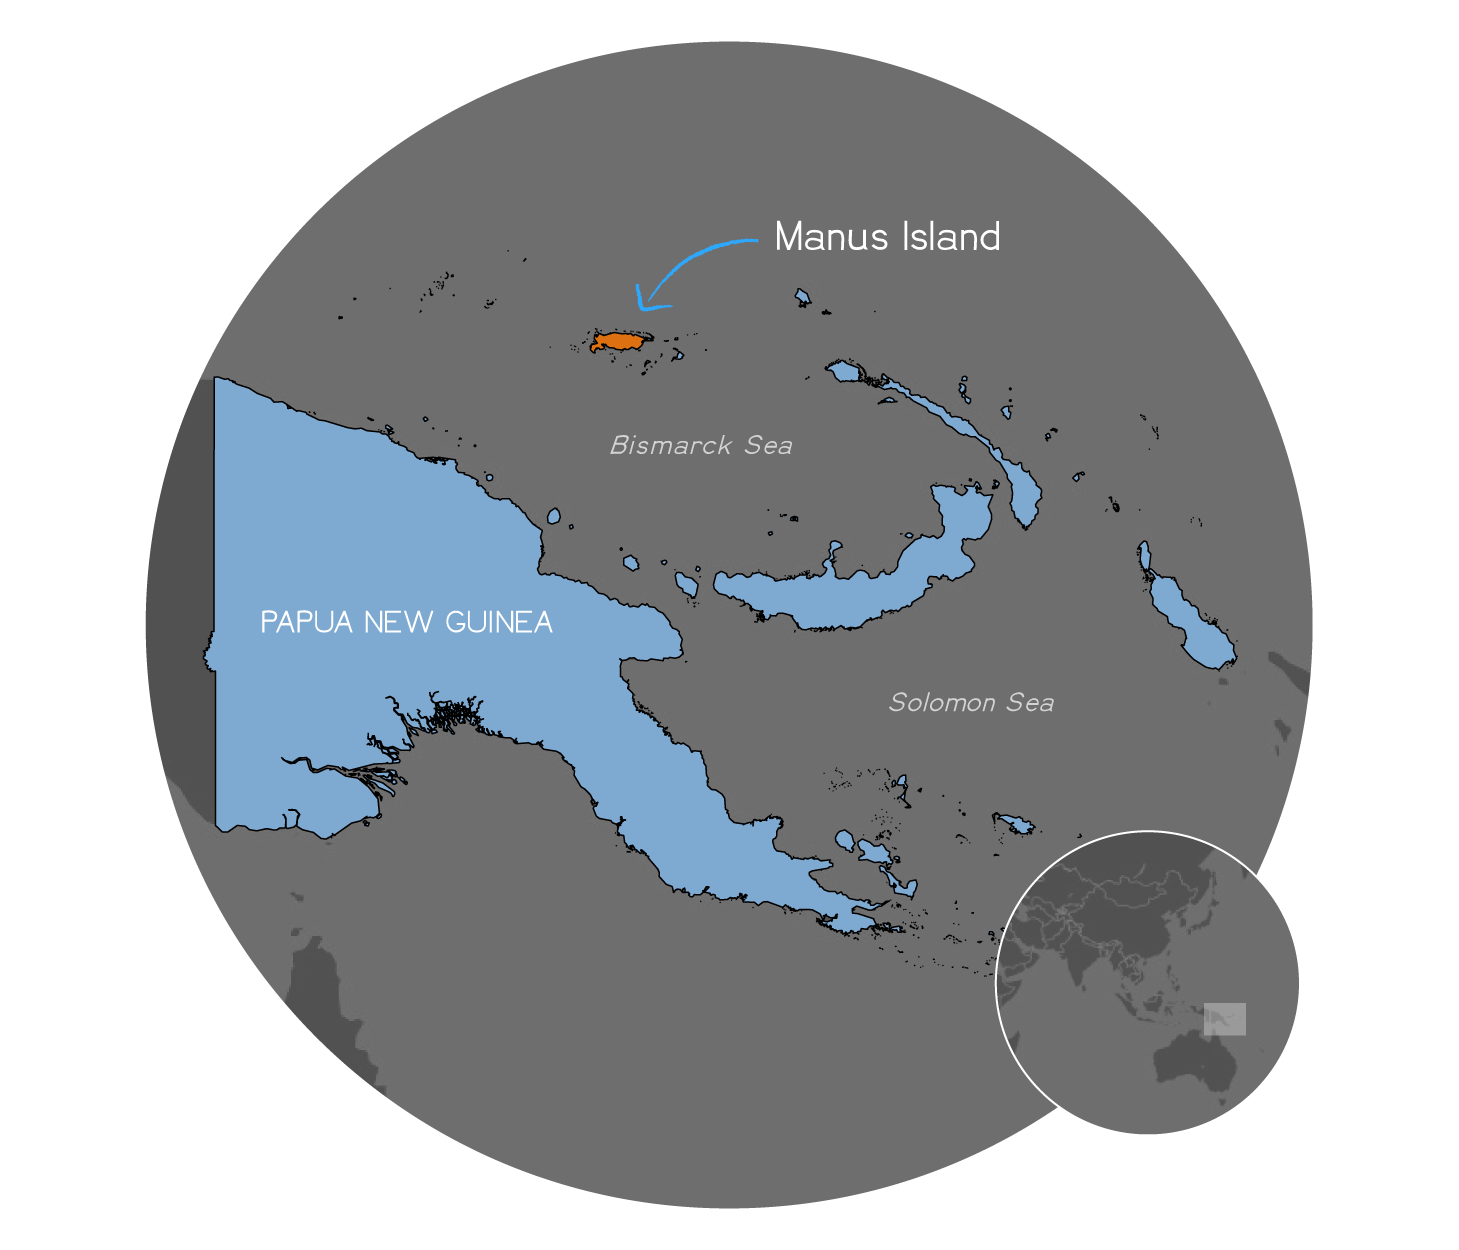 A map showing Papua New Guinea, with Manus Island highlighted to the north.